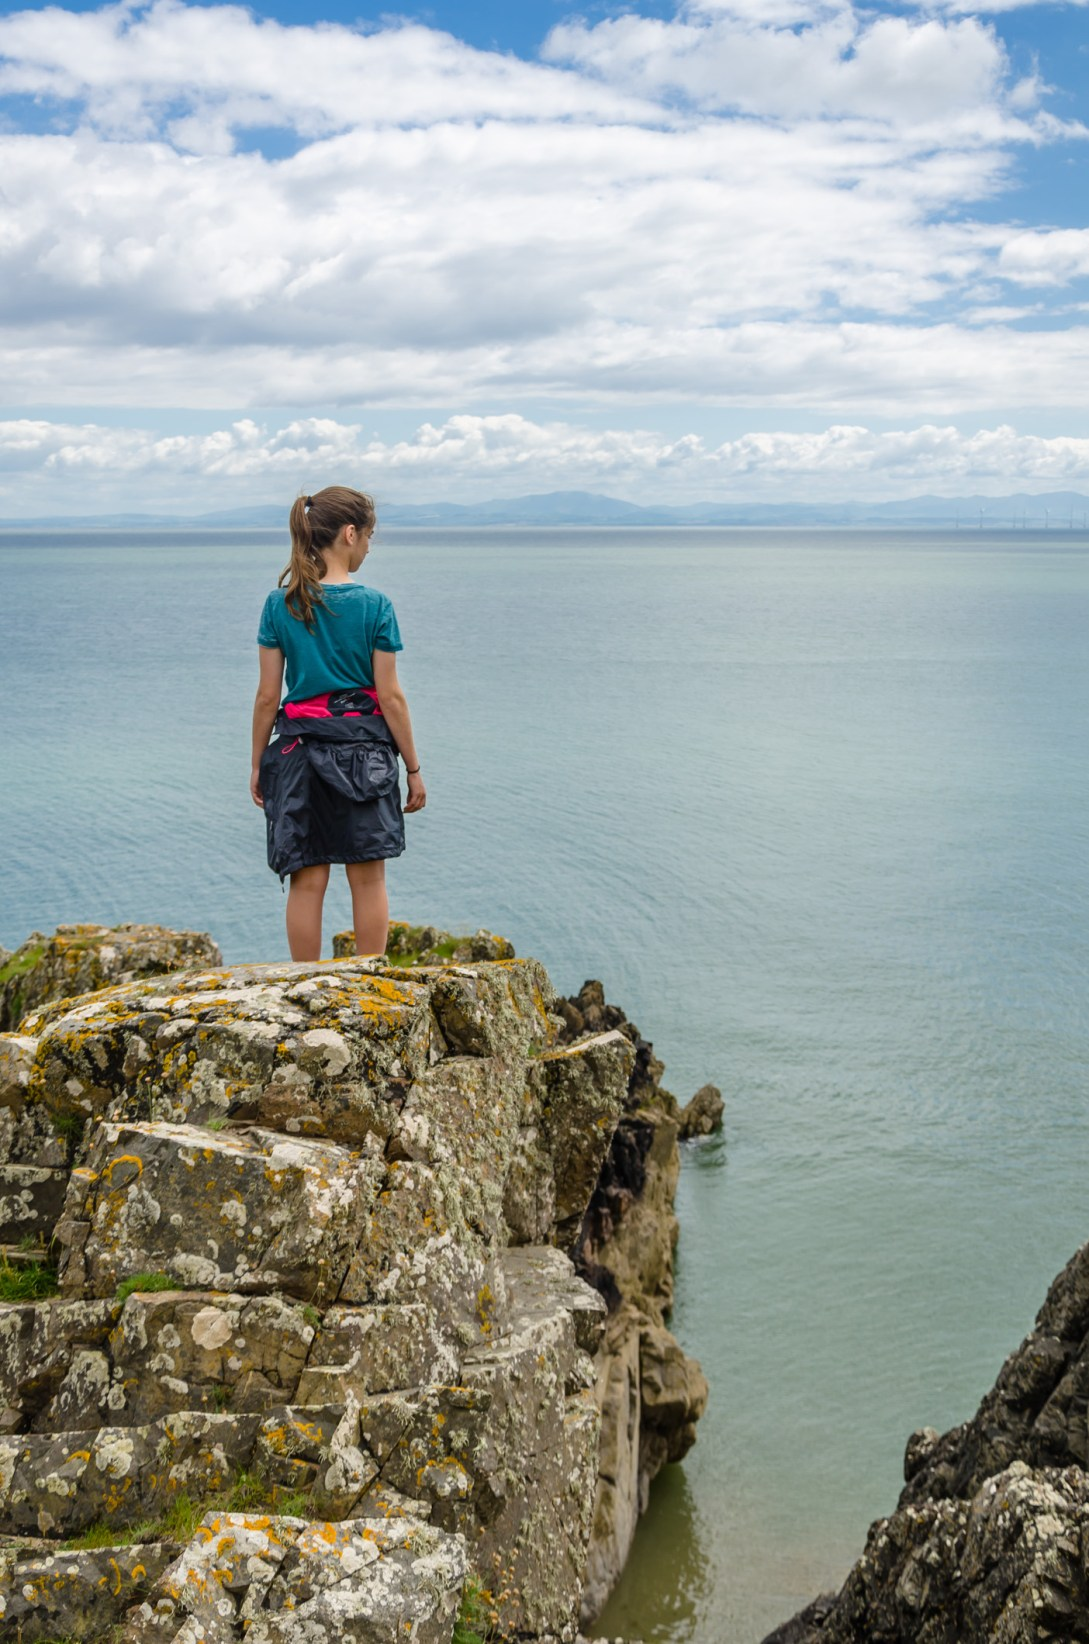 Looking out across the Solway Firth to the Lake District